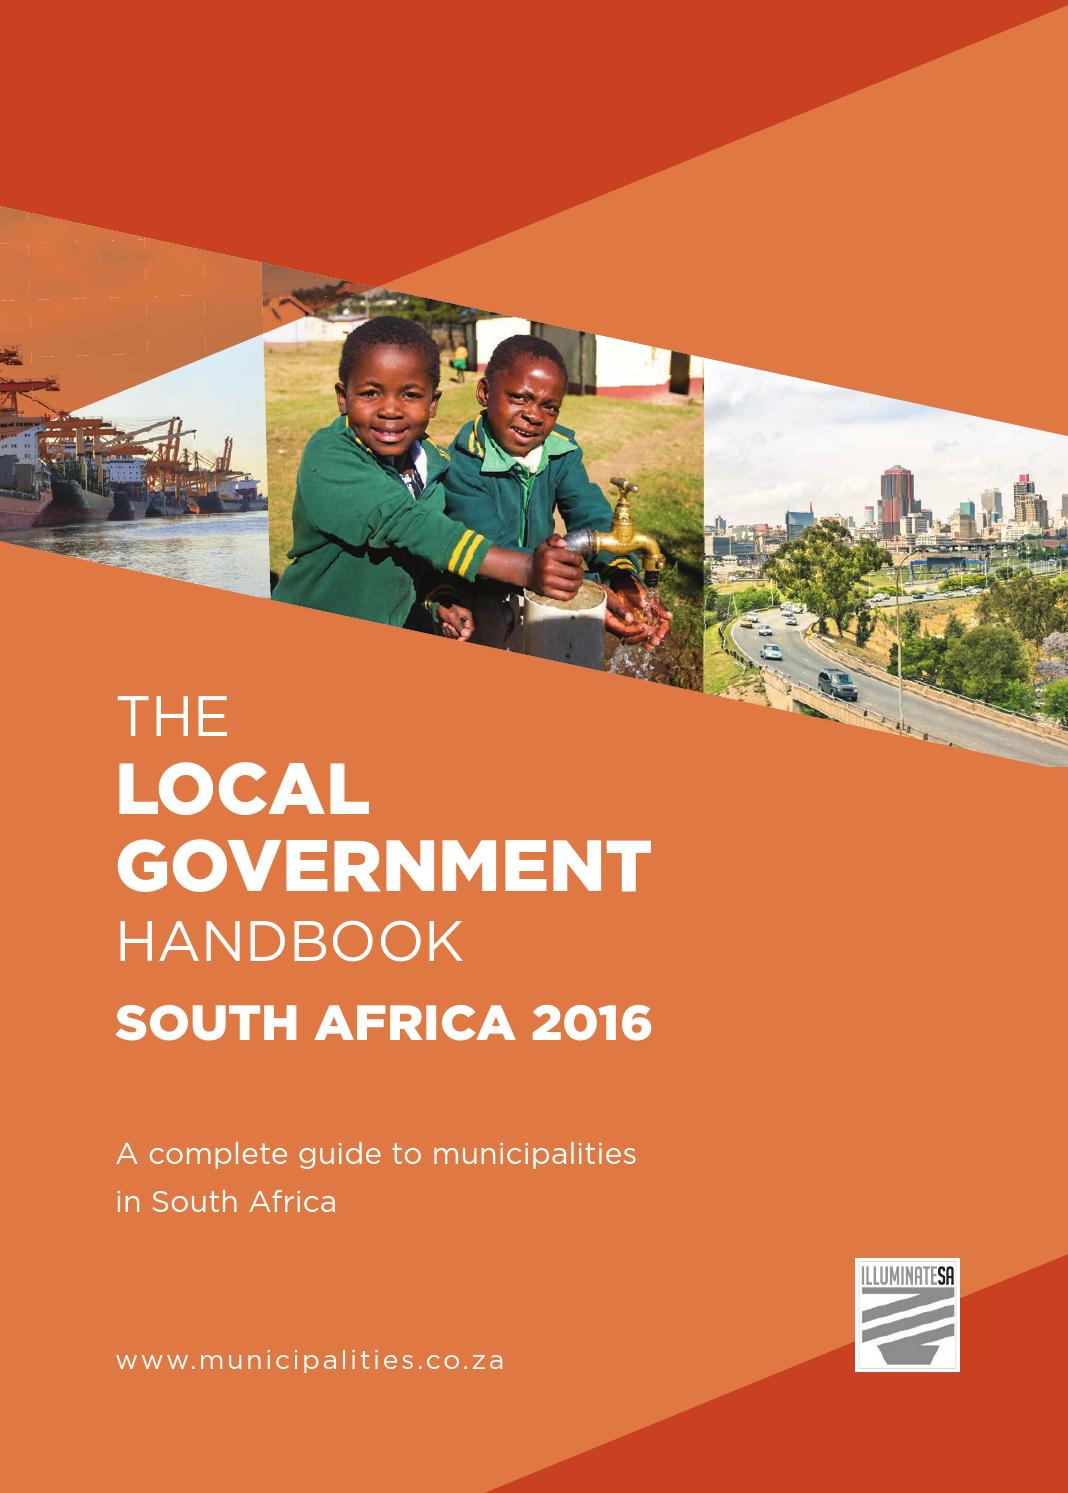 Local Government Handbook - South Africa 2016 by Yes Media